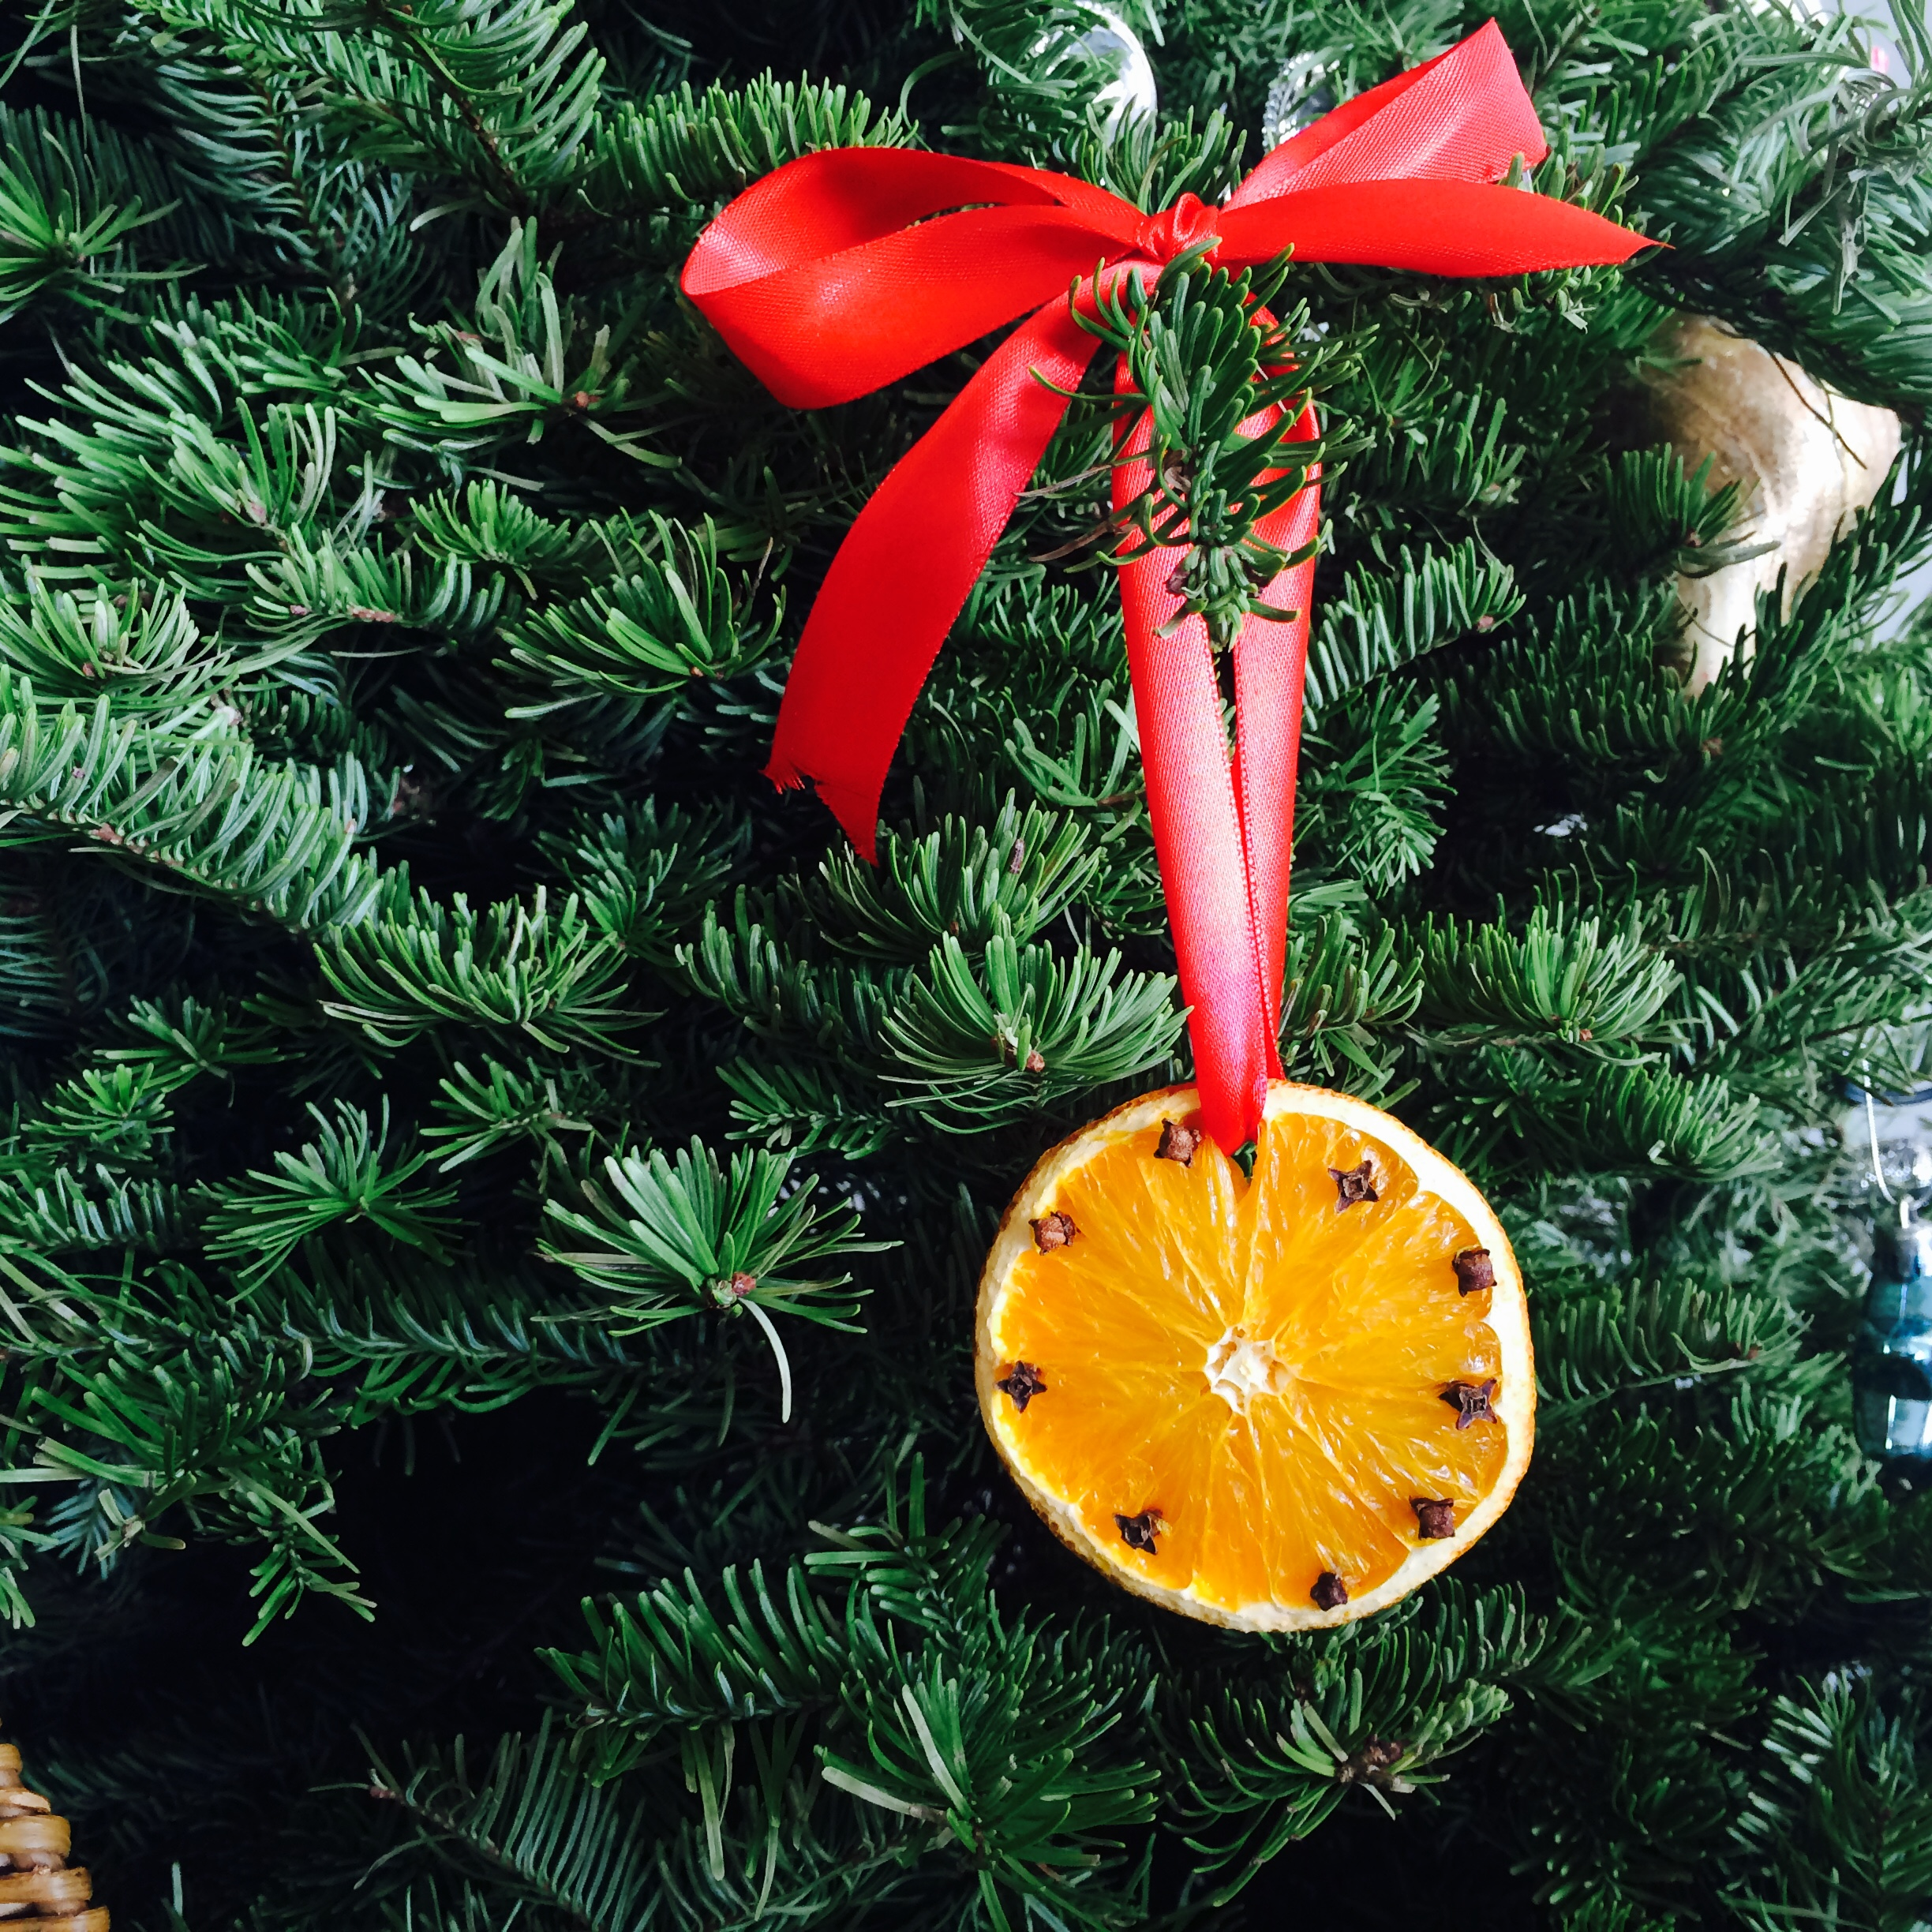 Christmas Decorations With Orange: Dried Orange Christmas Tree Decorations